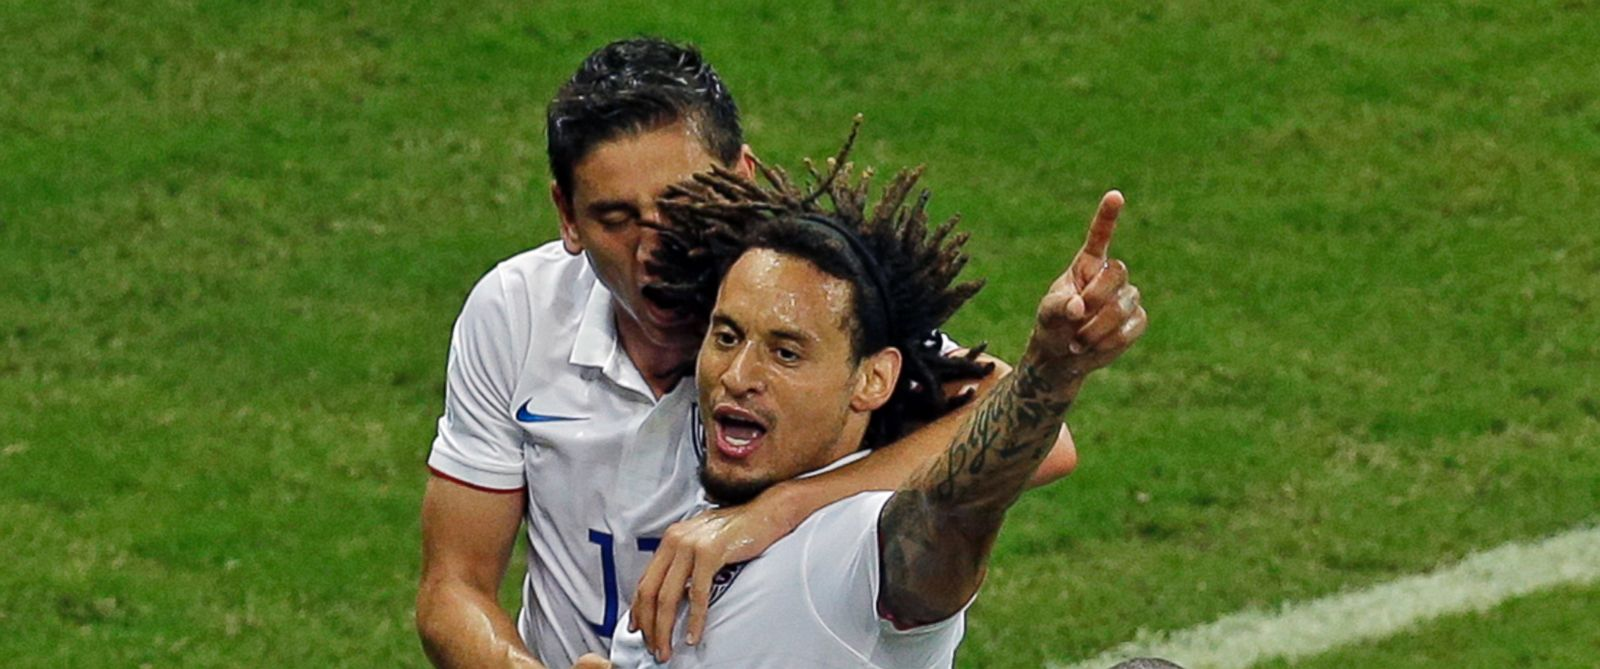 PHOTO: United States Jermaine Jones, center, celebrates scoring a goal during the group G World Cup soccer match between the USA and Portugal at the Arena da Amazonia in Manaus, Brazil, June 22, 2014.